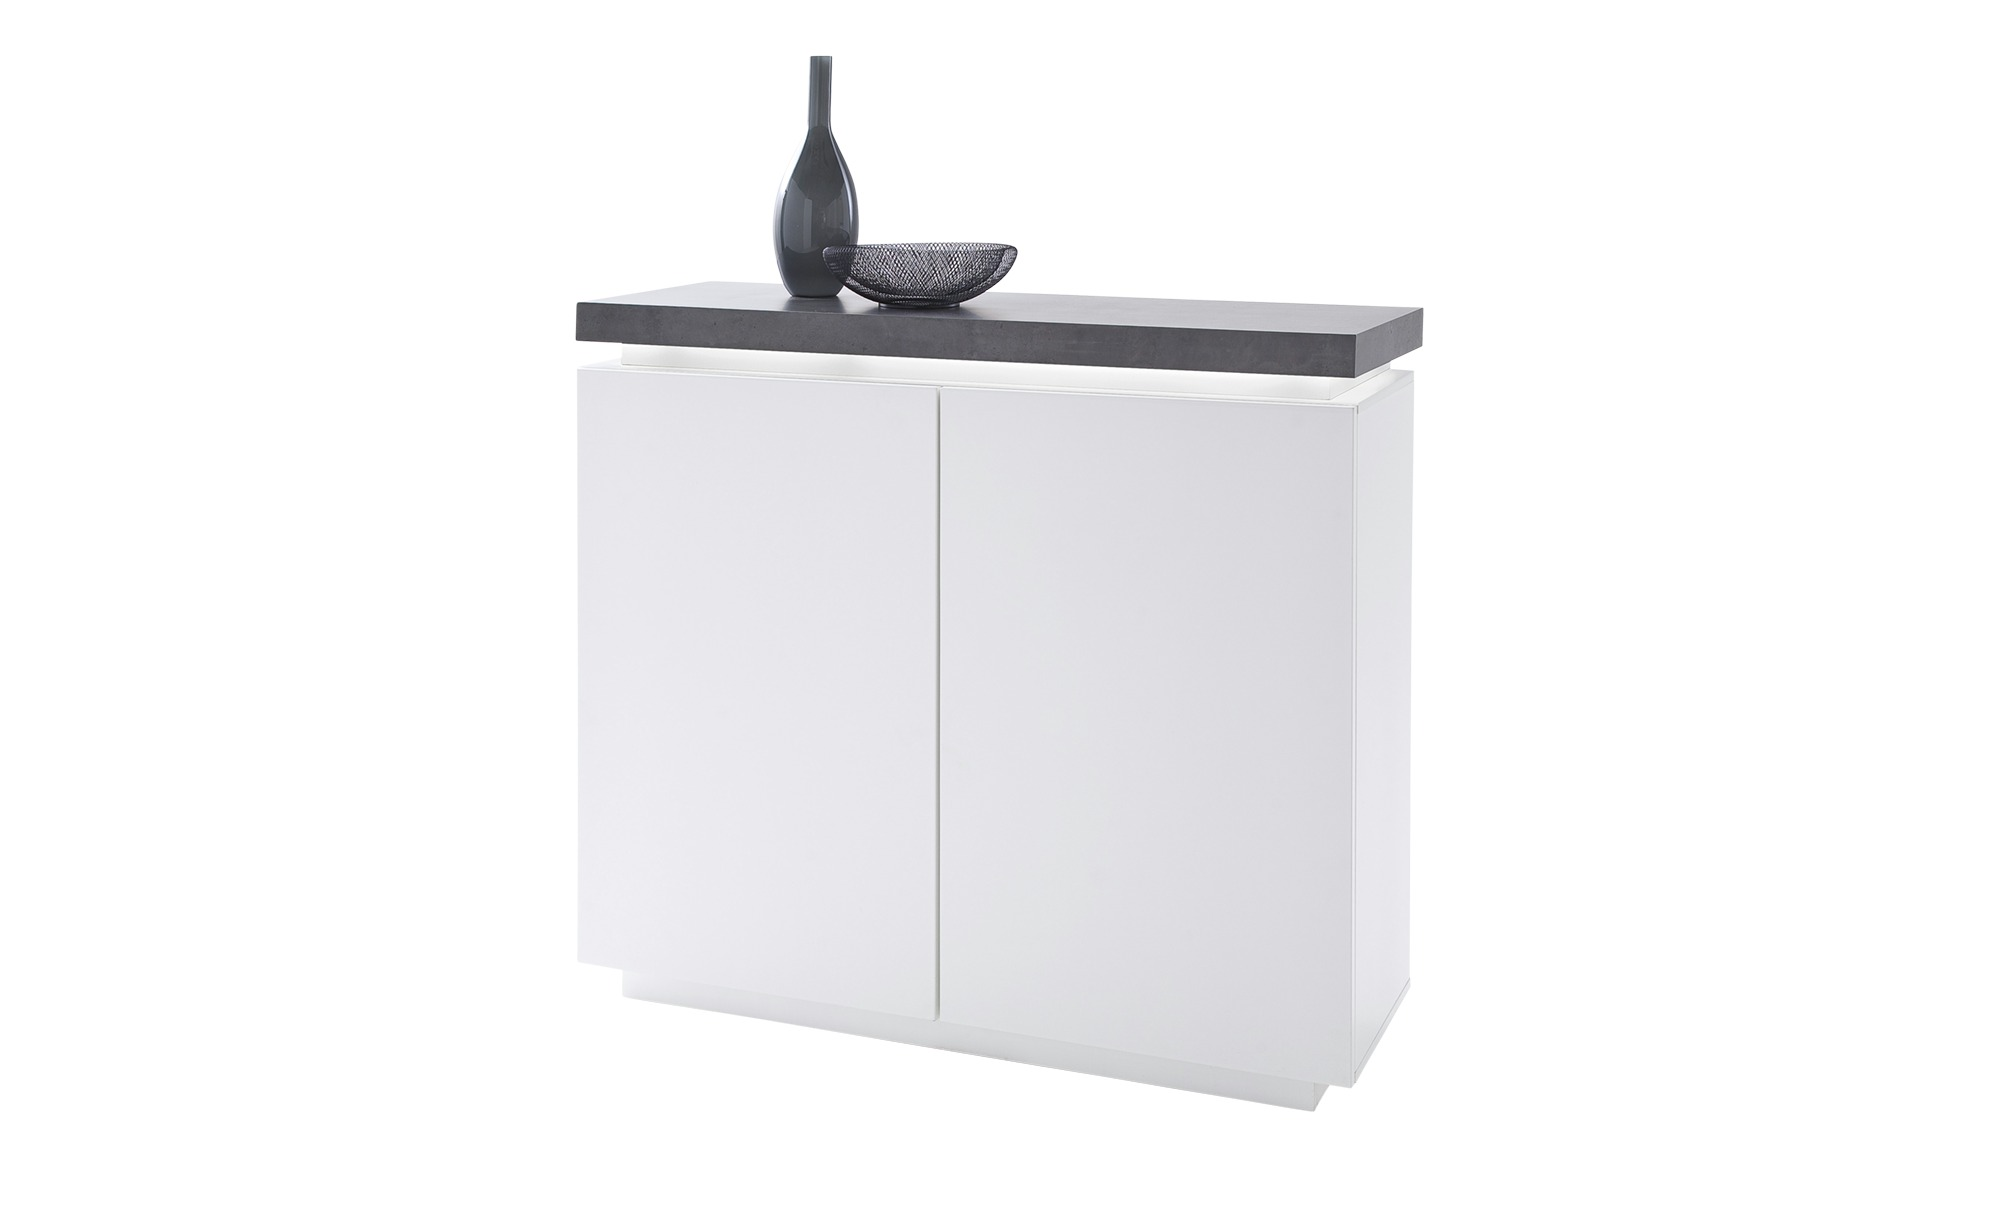 Highboard  Fornico ¦ weiß ¦ Maße (cm): B: 120 H: 113 T: 40 Kommoden & Sideboards > Highboards - Höffner